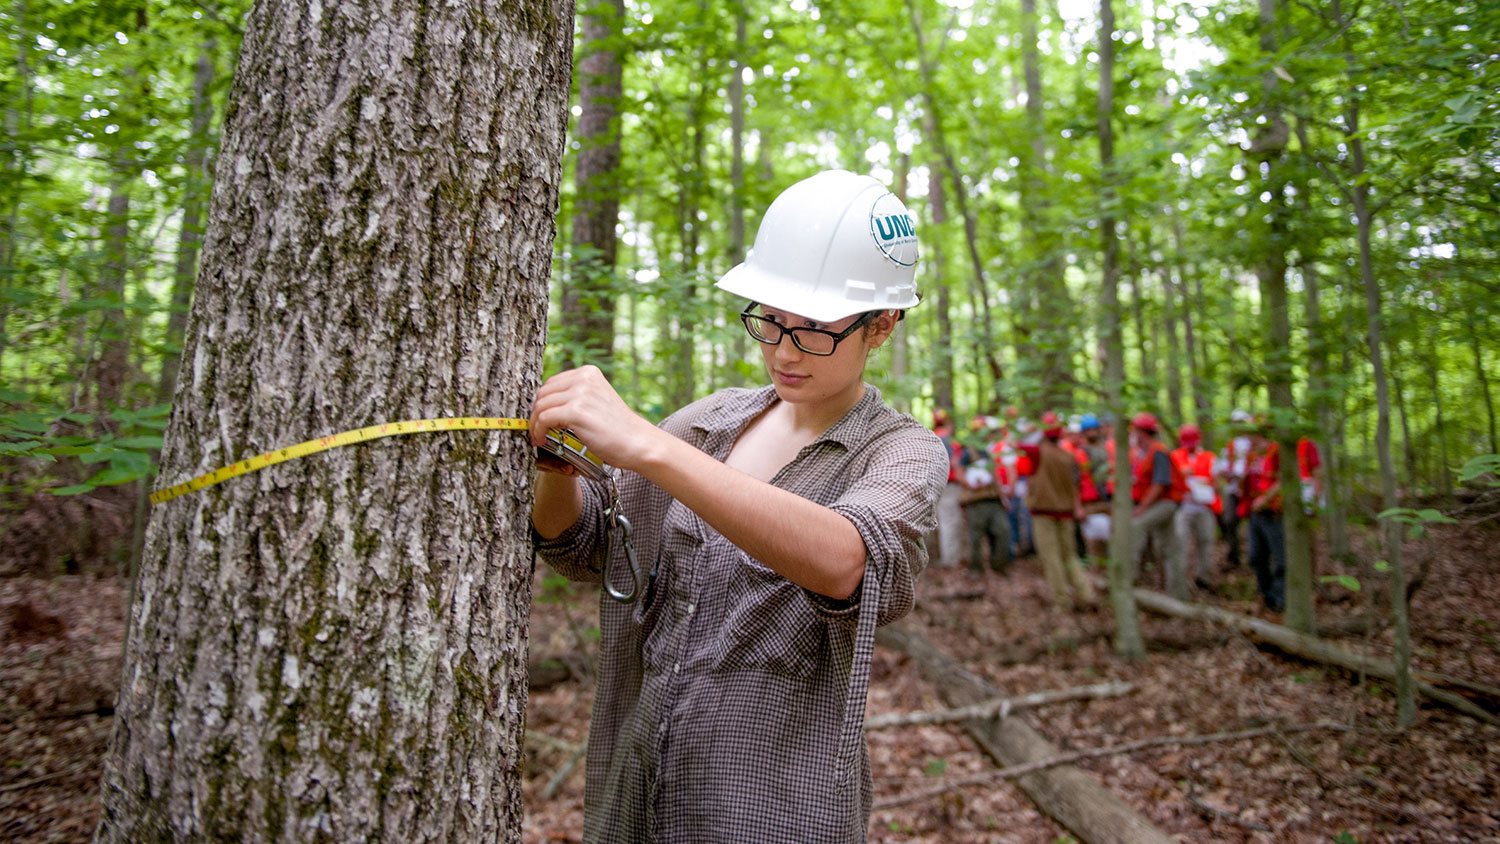 Measuring Trees - Academics - College of Natural Resources at NCState University